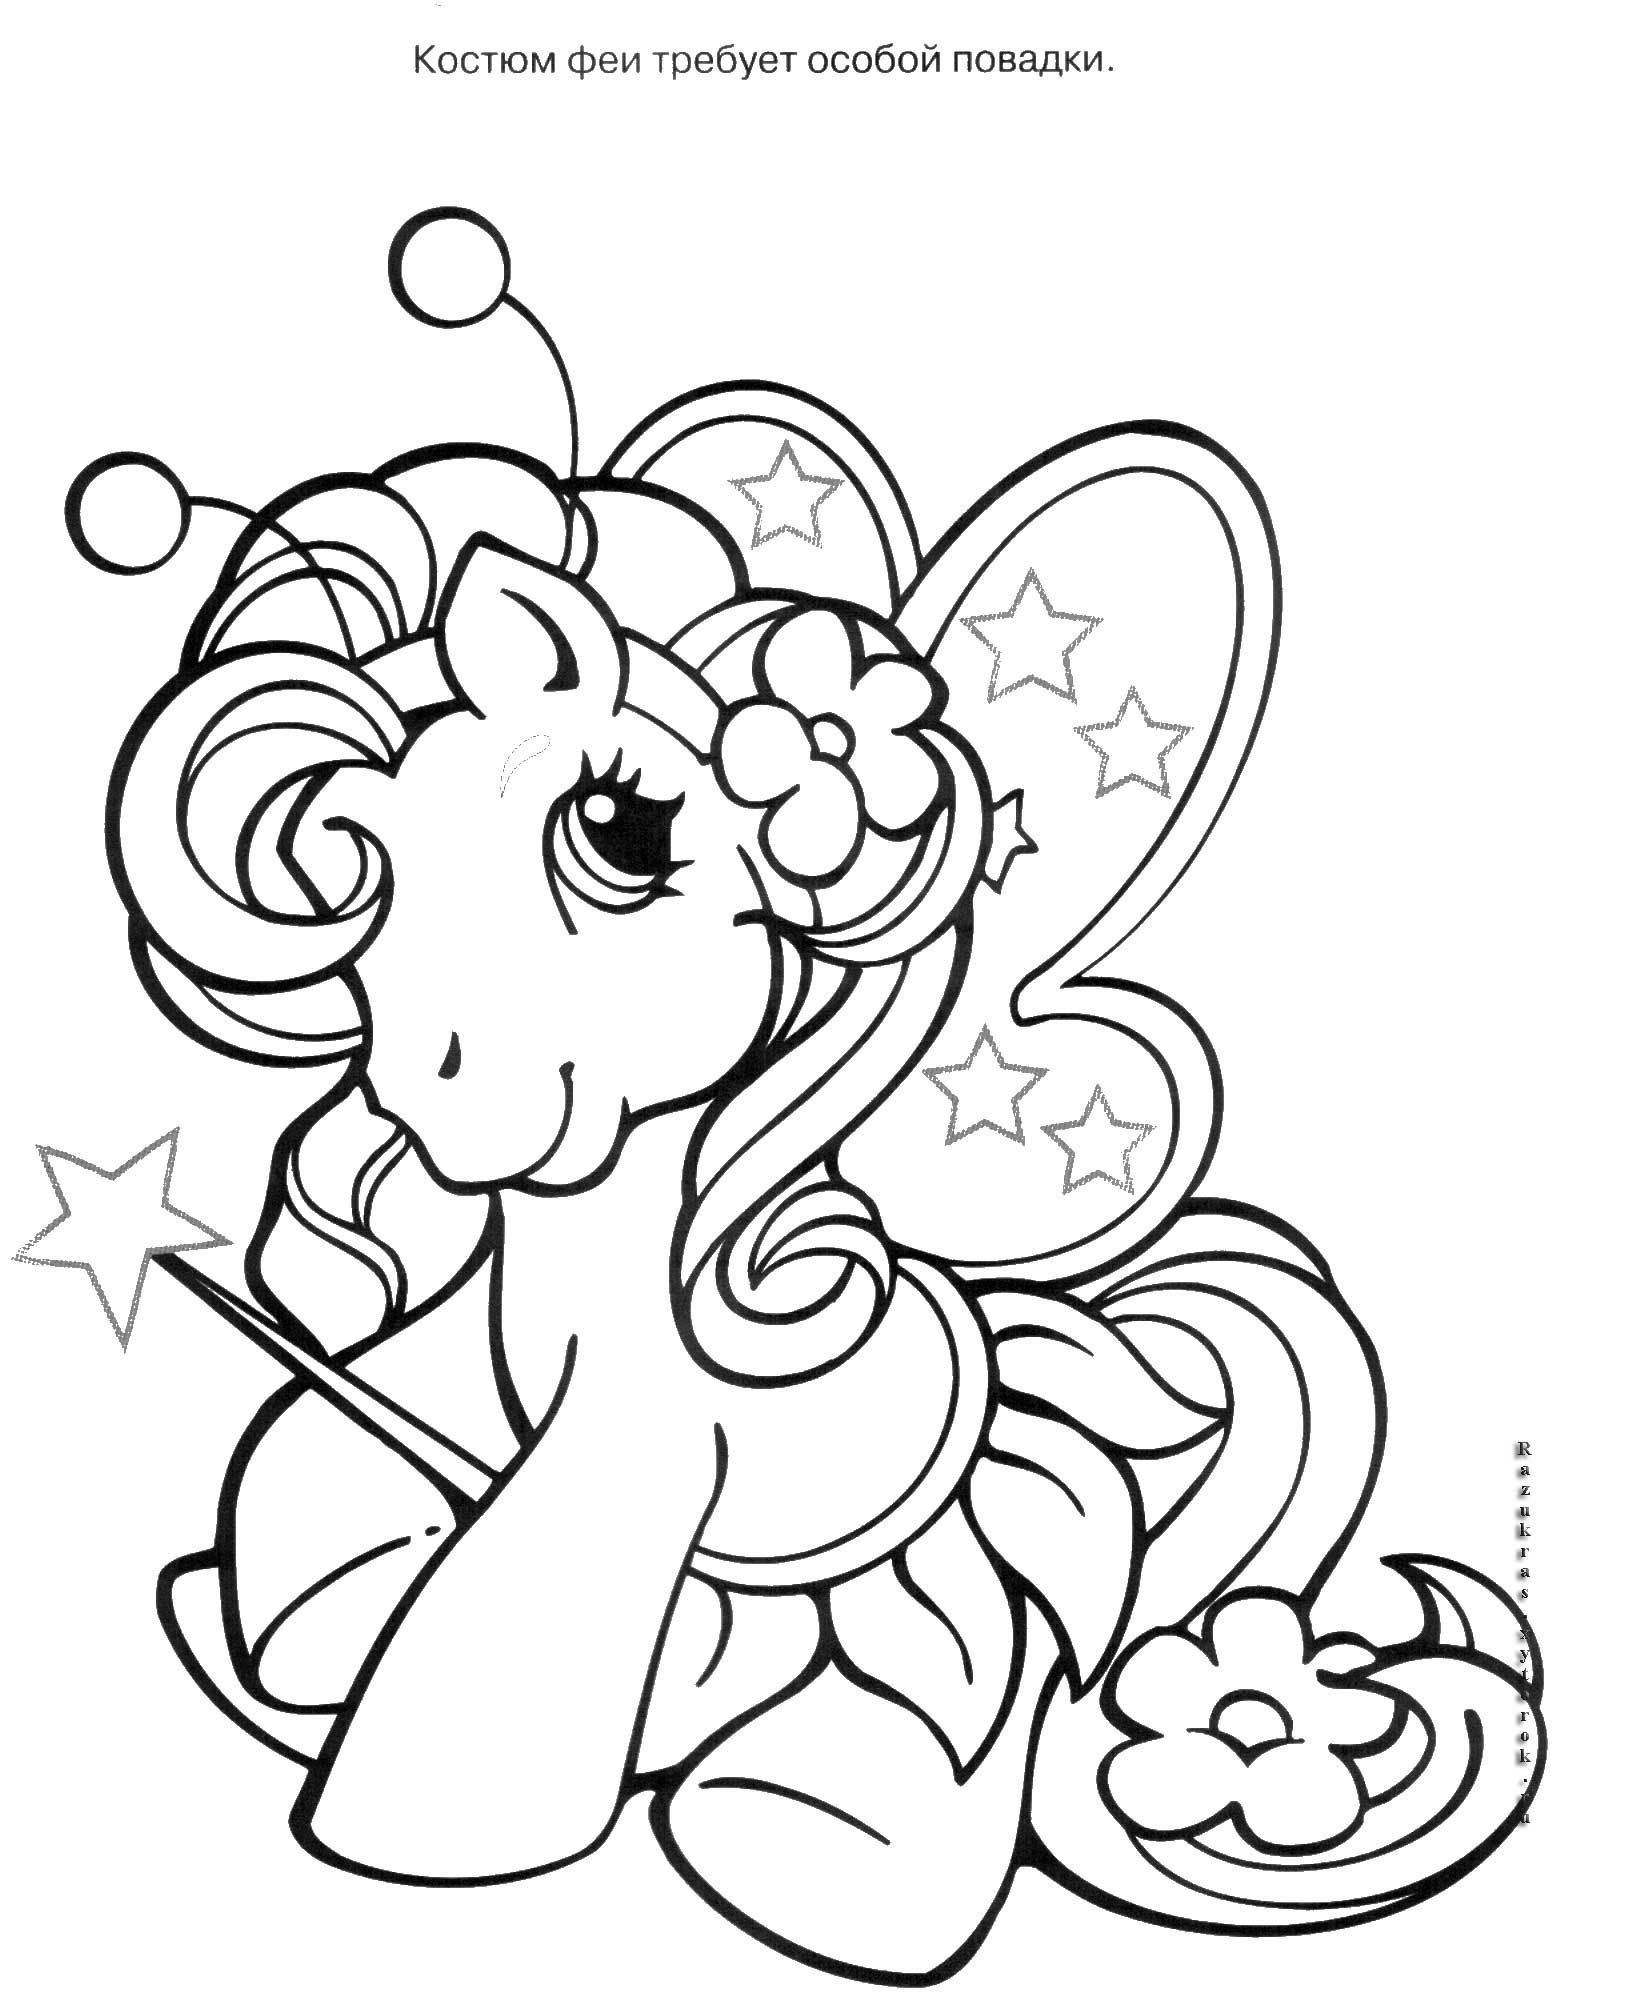 Ausmalbilder Kostenlos My Little Pony : Mon Petit Poney My Little Pony Children Coloring Pages Pinterest